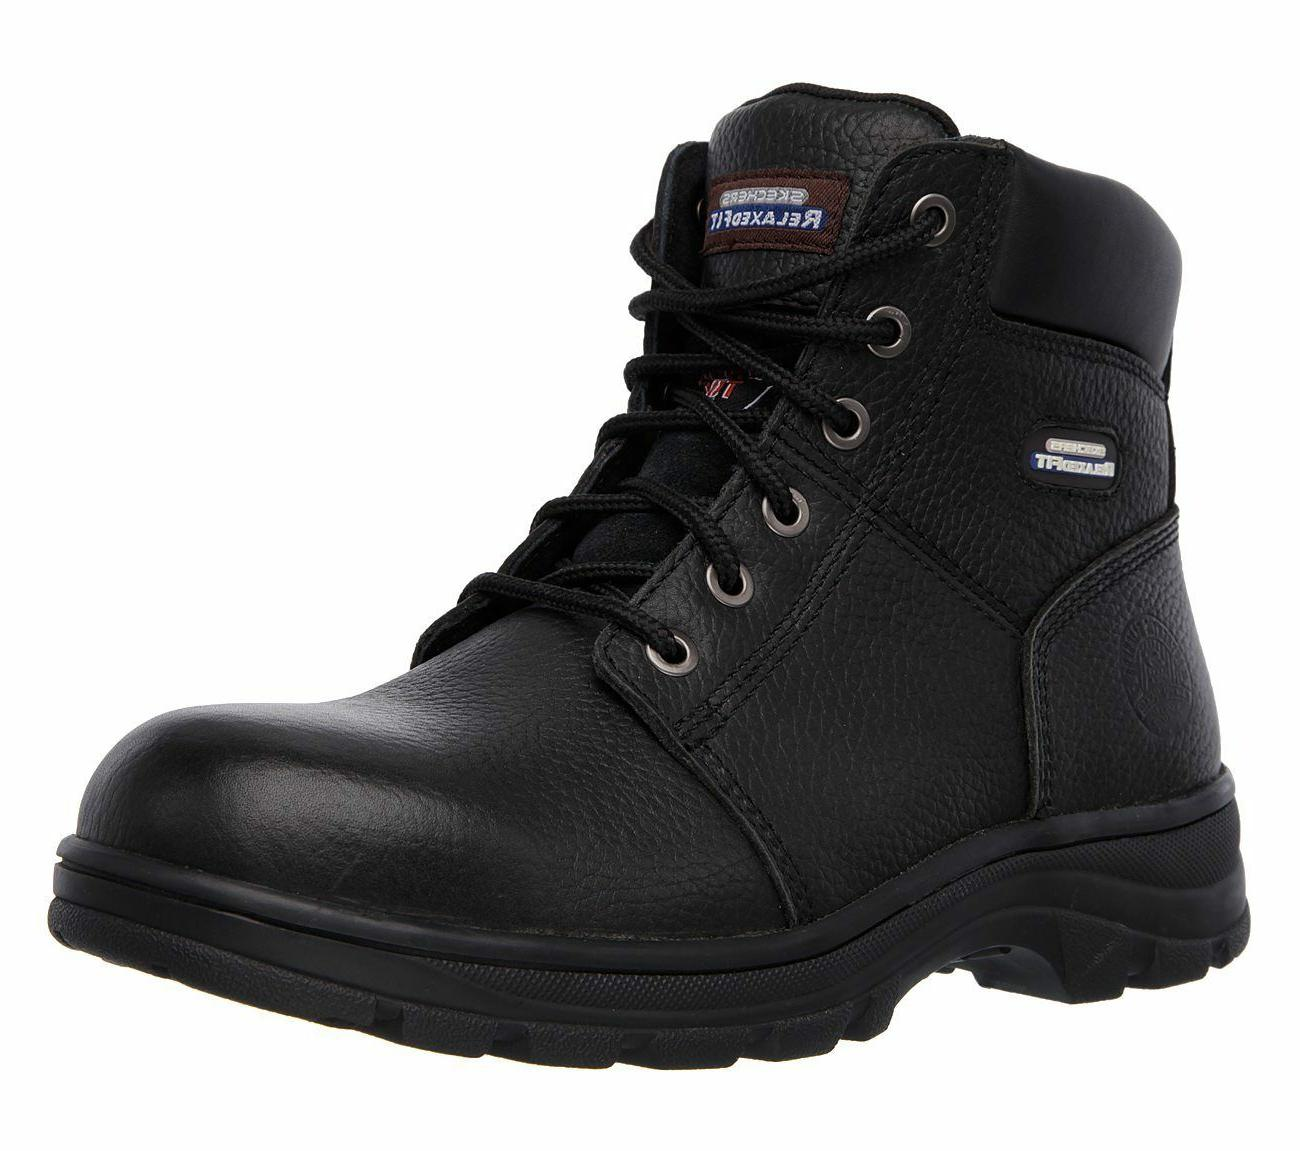 Skechers Work Relaxed Fit - Workshire ST Safety Boots Mens M